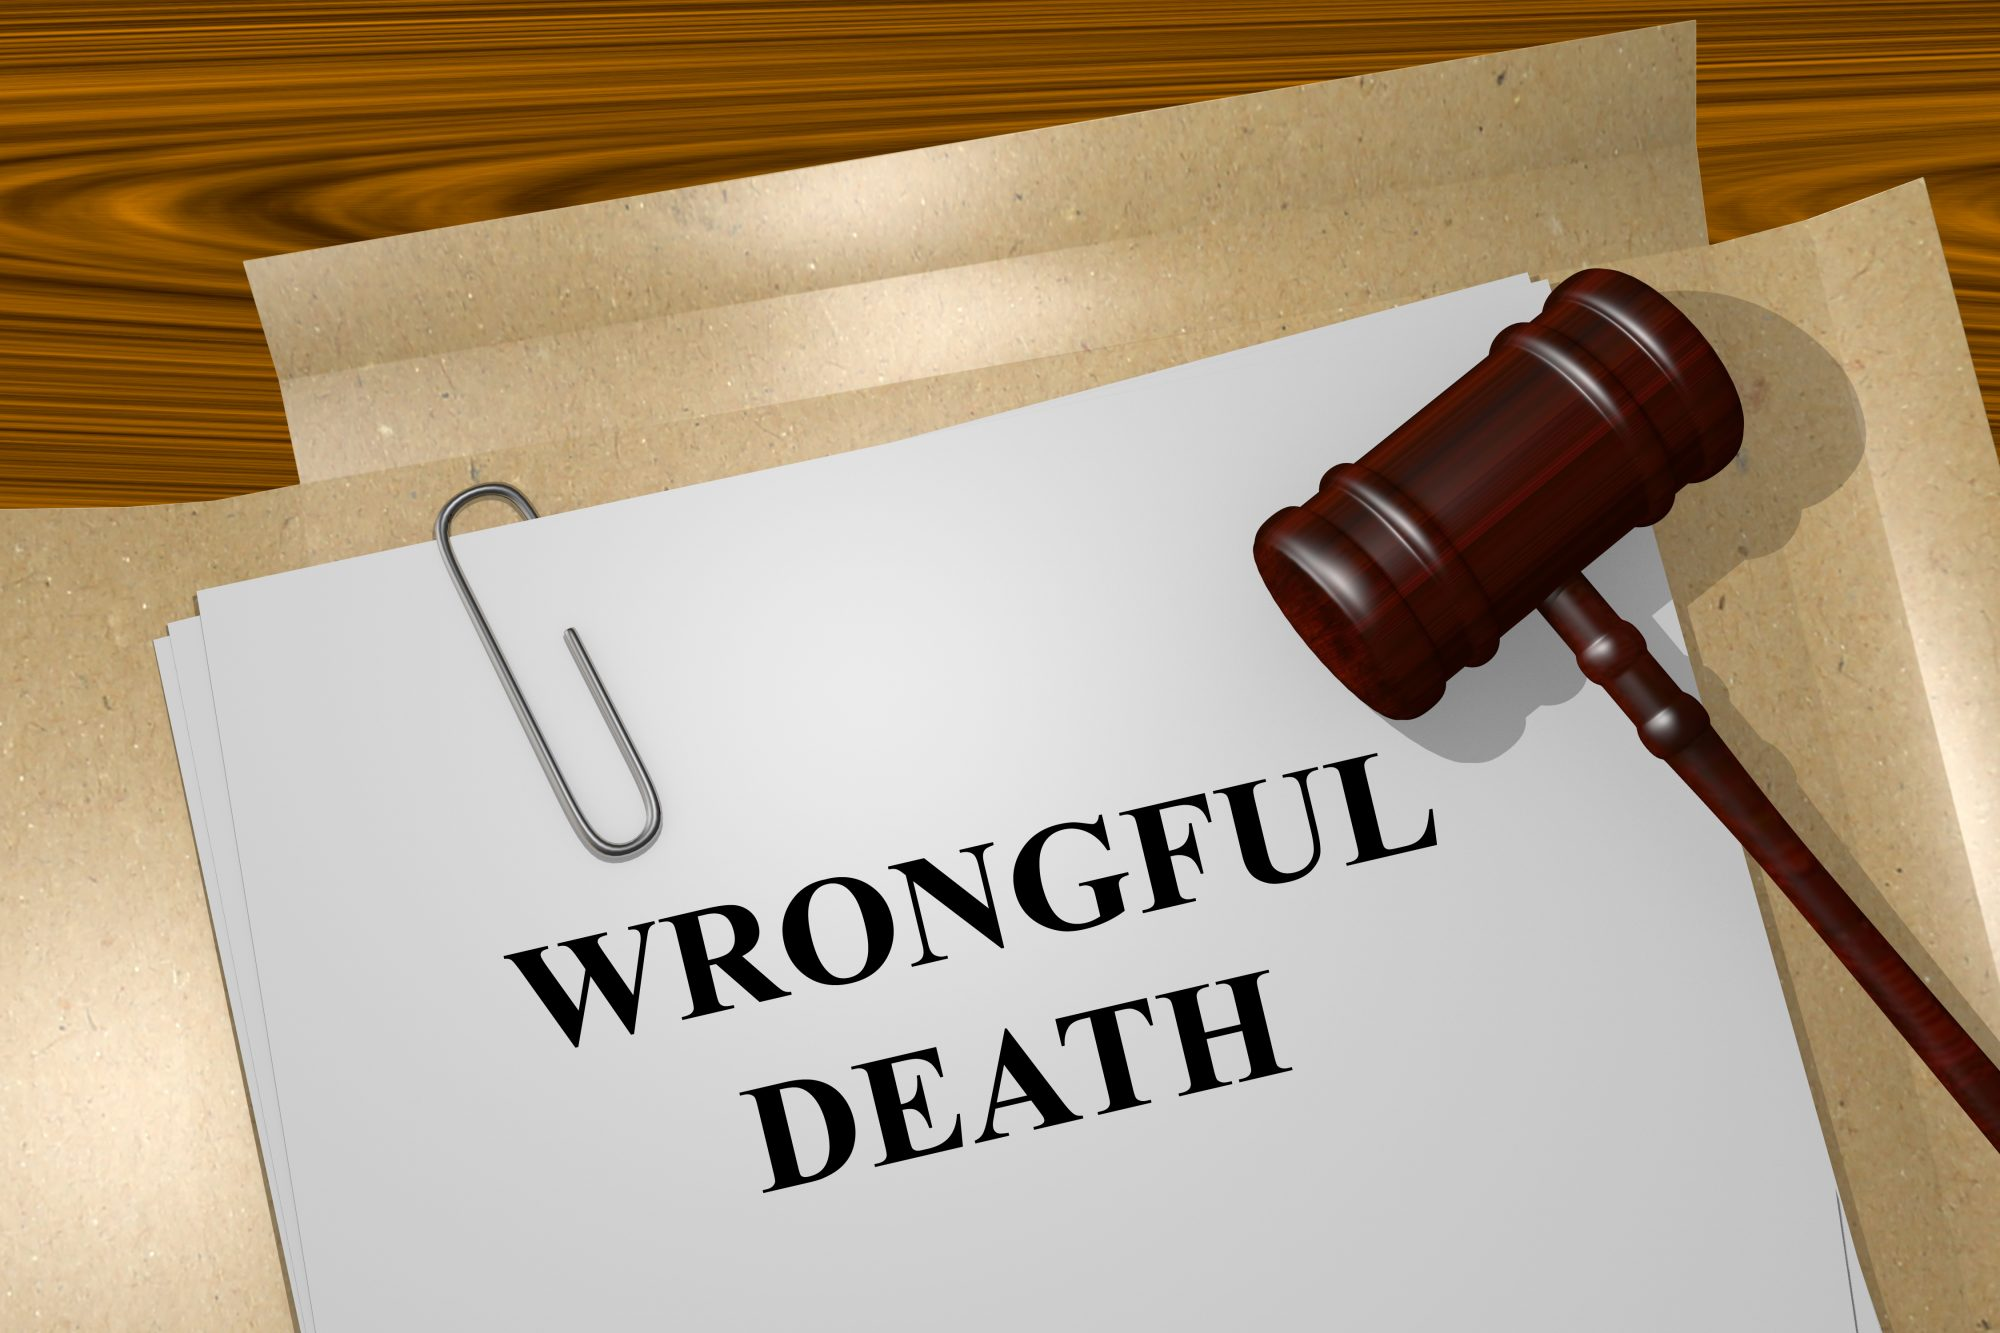 Maritime Wrongful Death Lawsuits